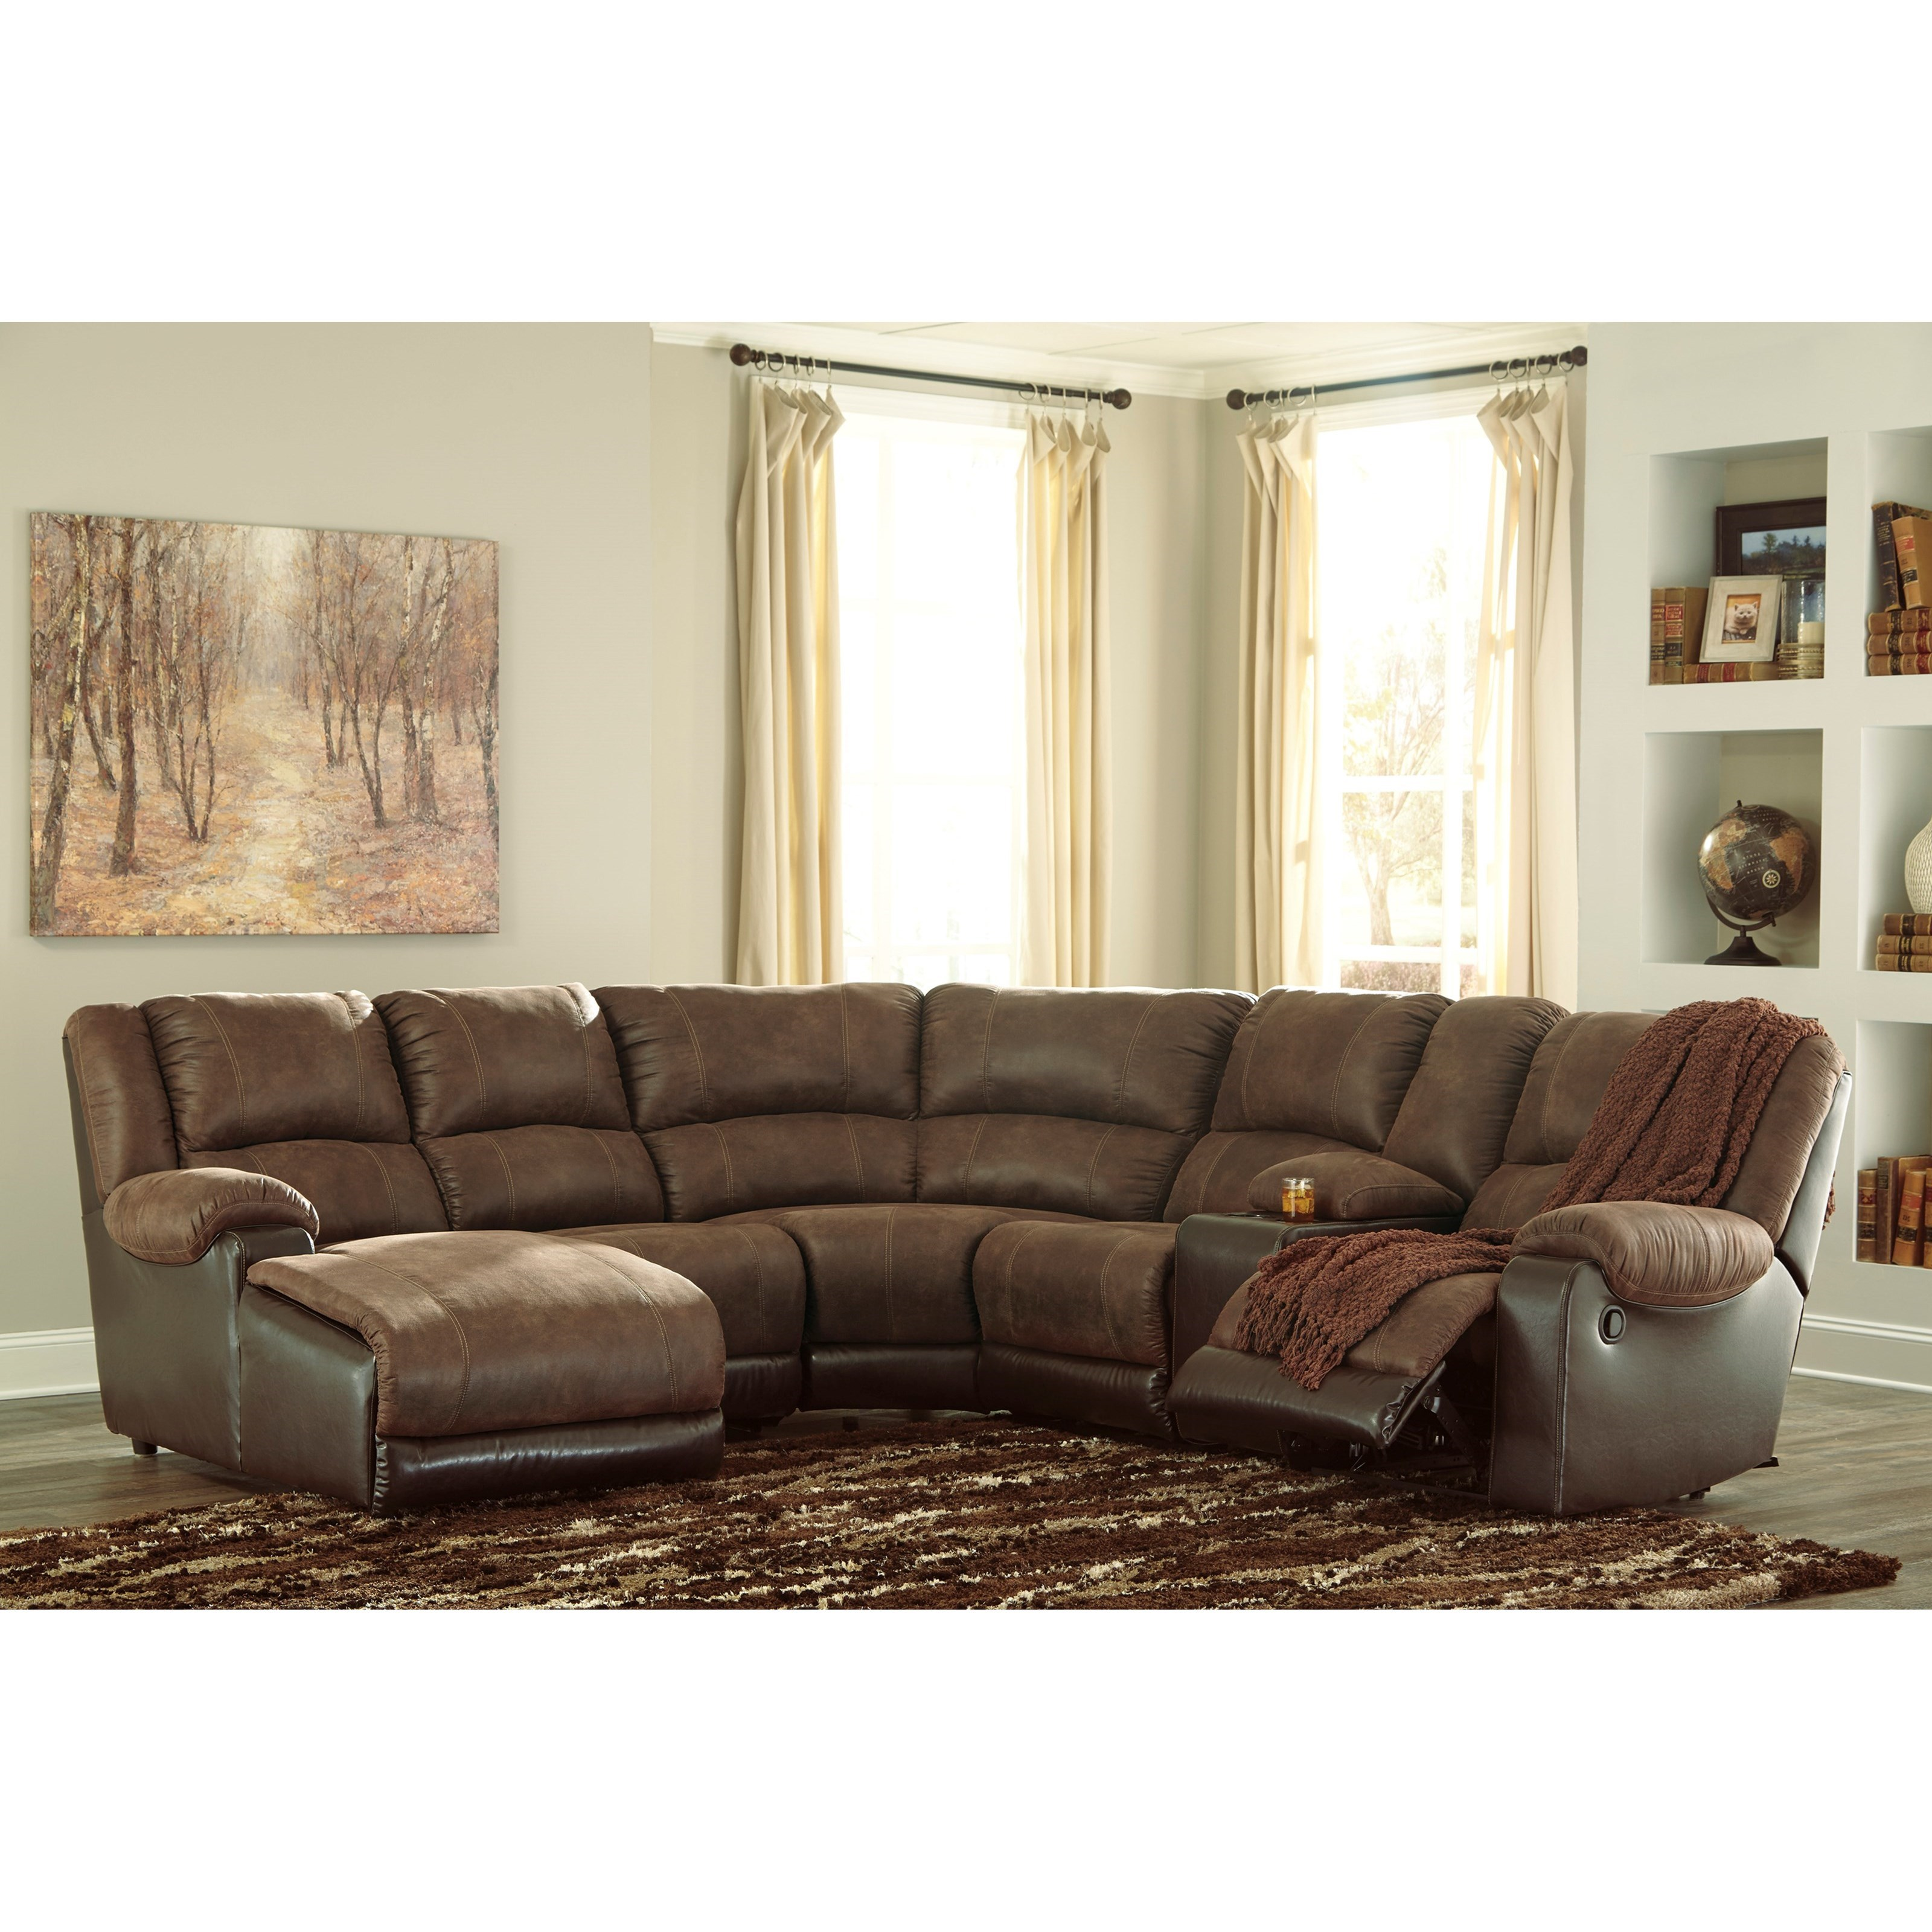 Signature design by ashley nantahala faux leather for At home designs sedona leather chaise recliner